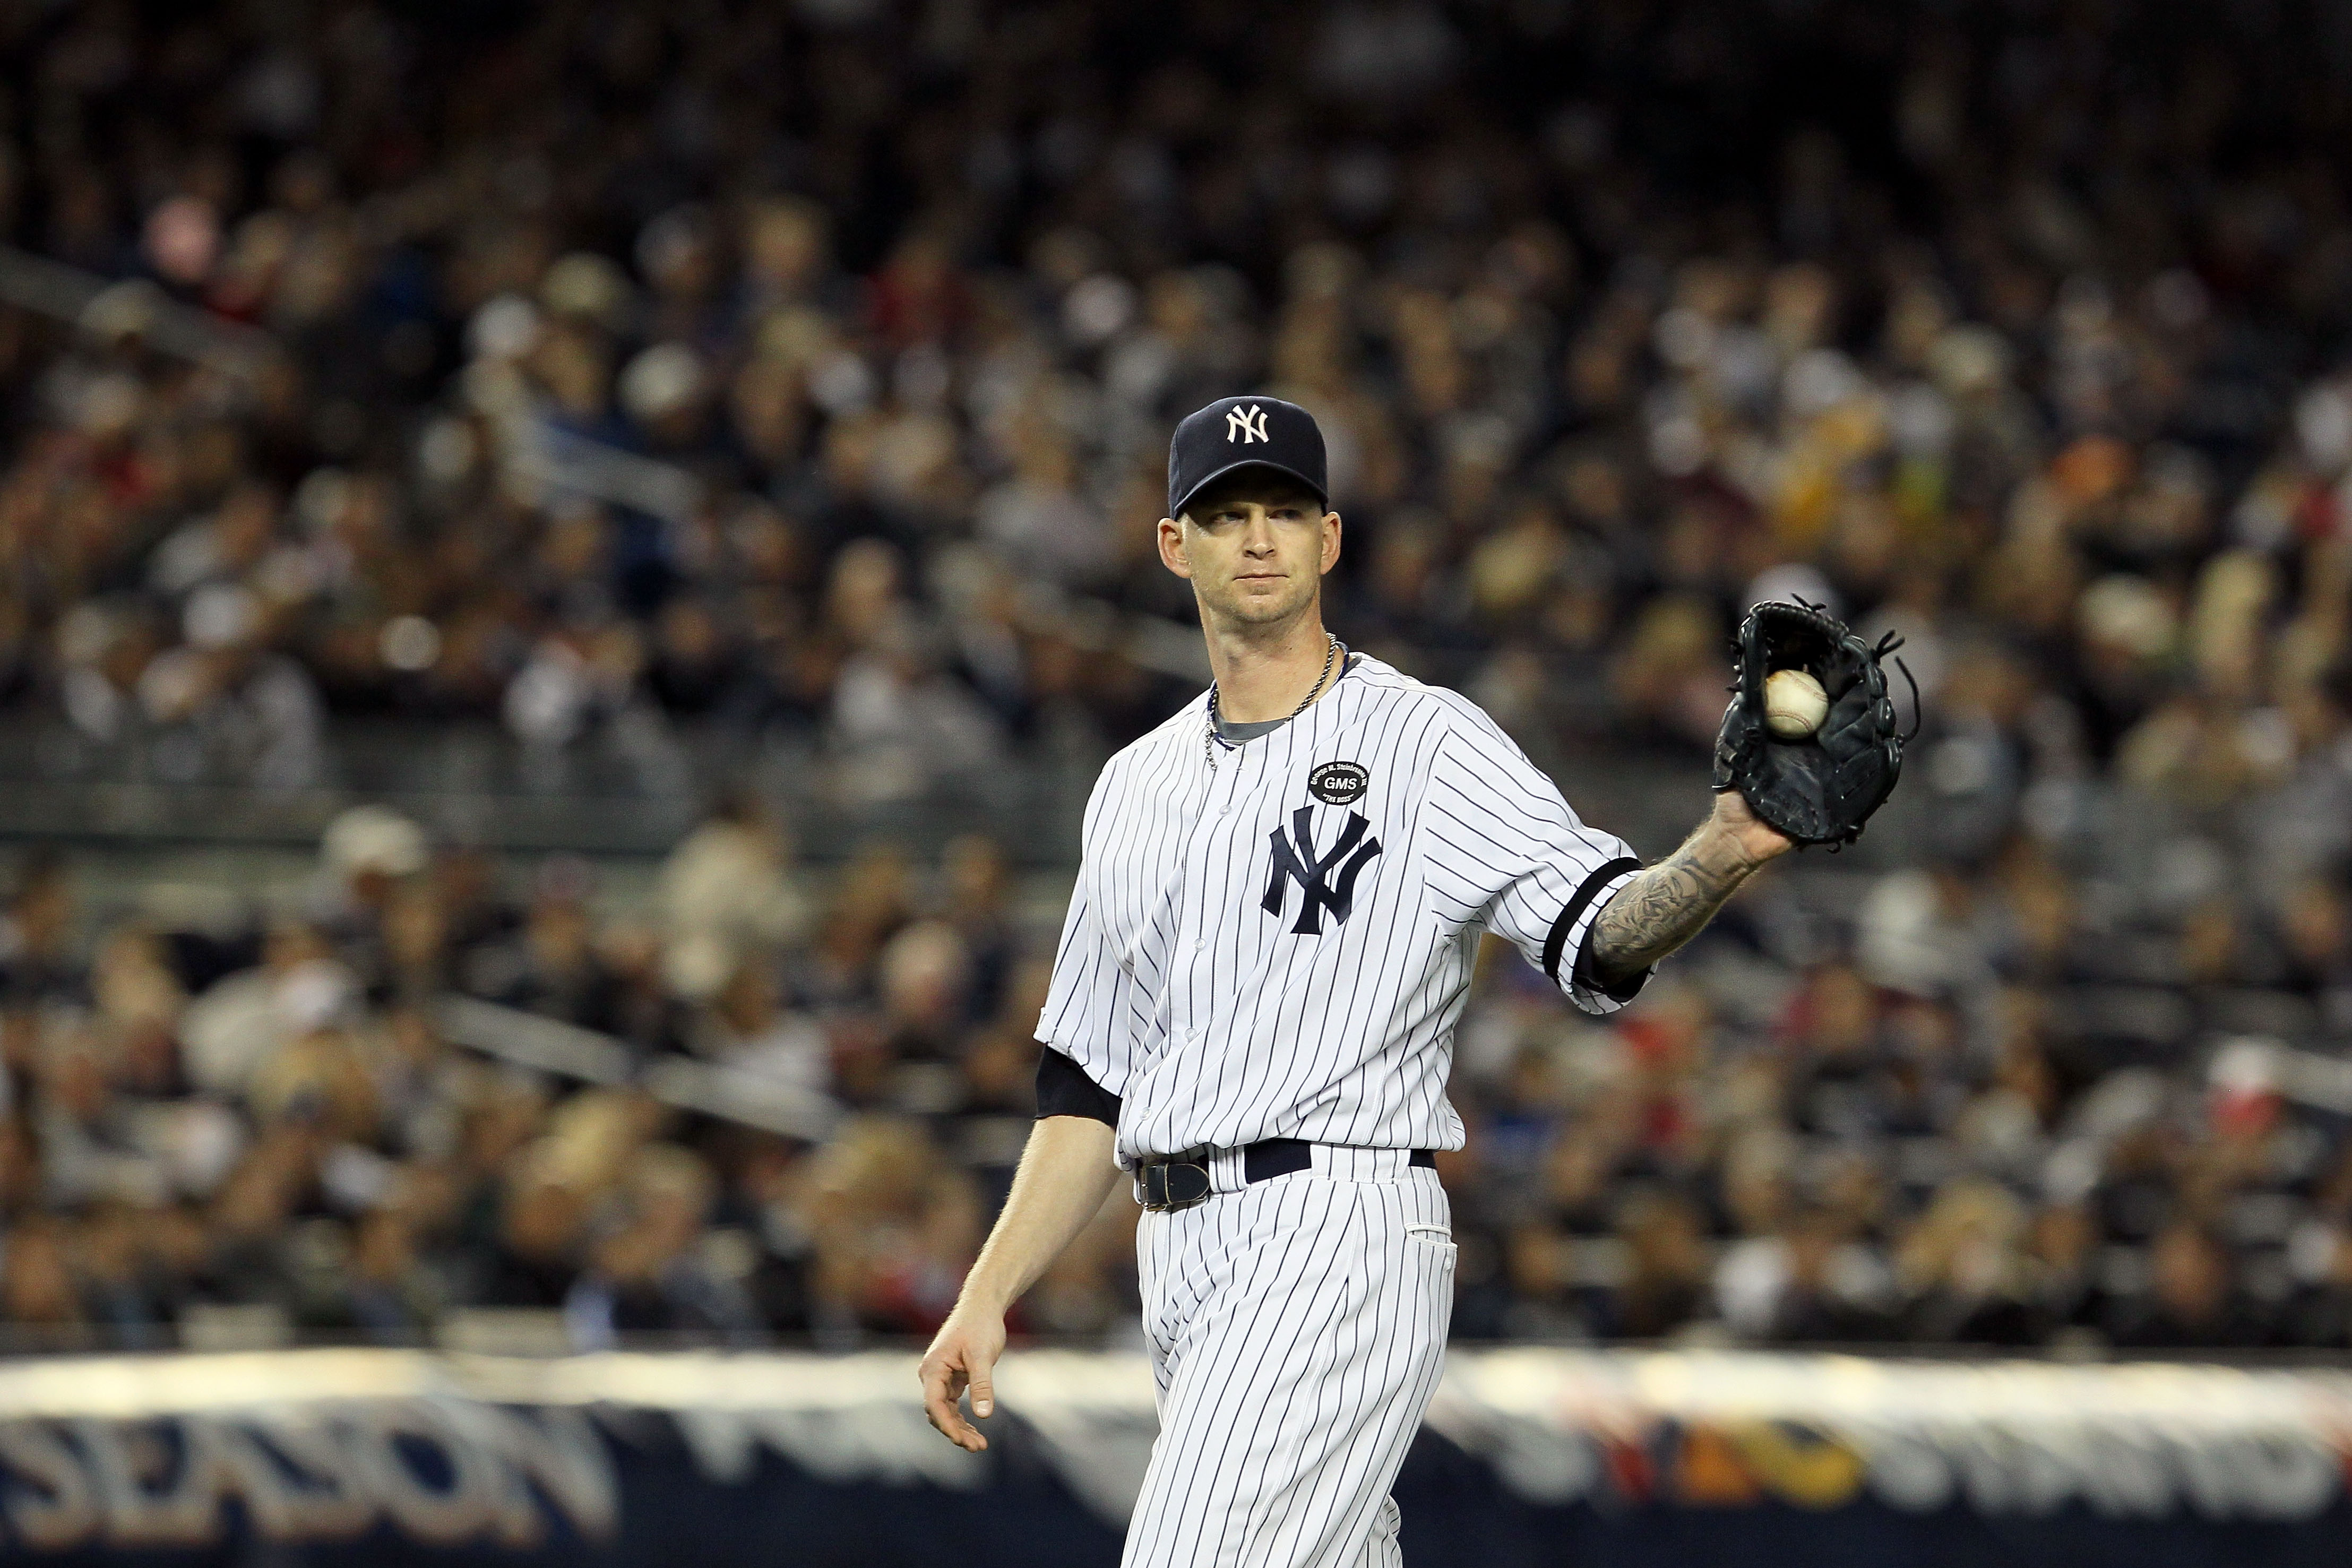 NEW YORK - OCTOBER 19:  A.J. Burnett #34 of the New York Yankees looks on against the Texas Rangers in Game Four of the ALCS during the 2010 MLB Playoffs at Yankee Stadium on October 19, 2010 in the Bronx borough of New York City.  (Photo by Jim McIsaac/G